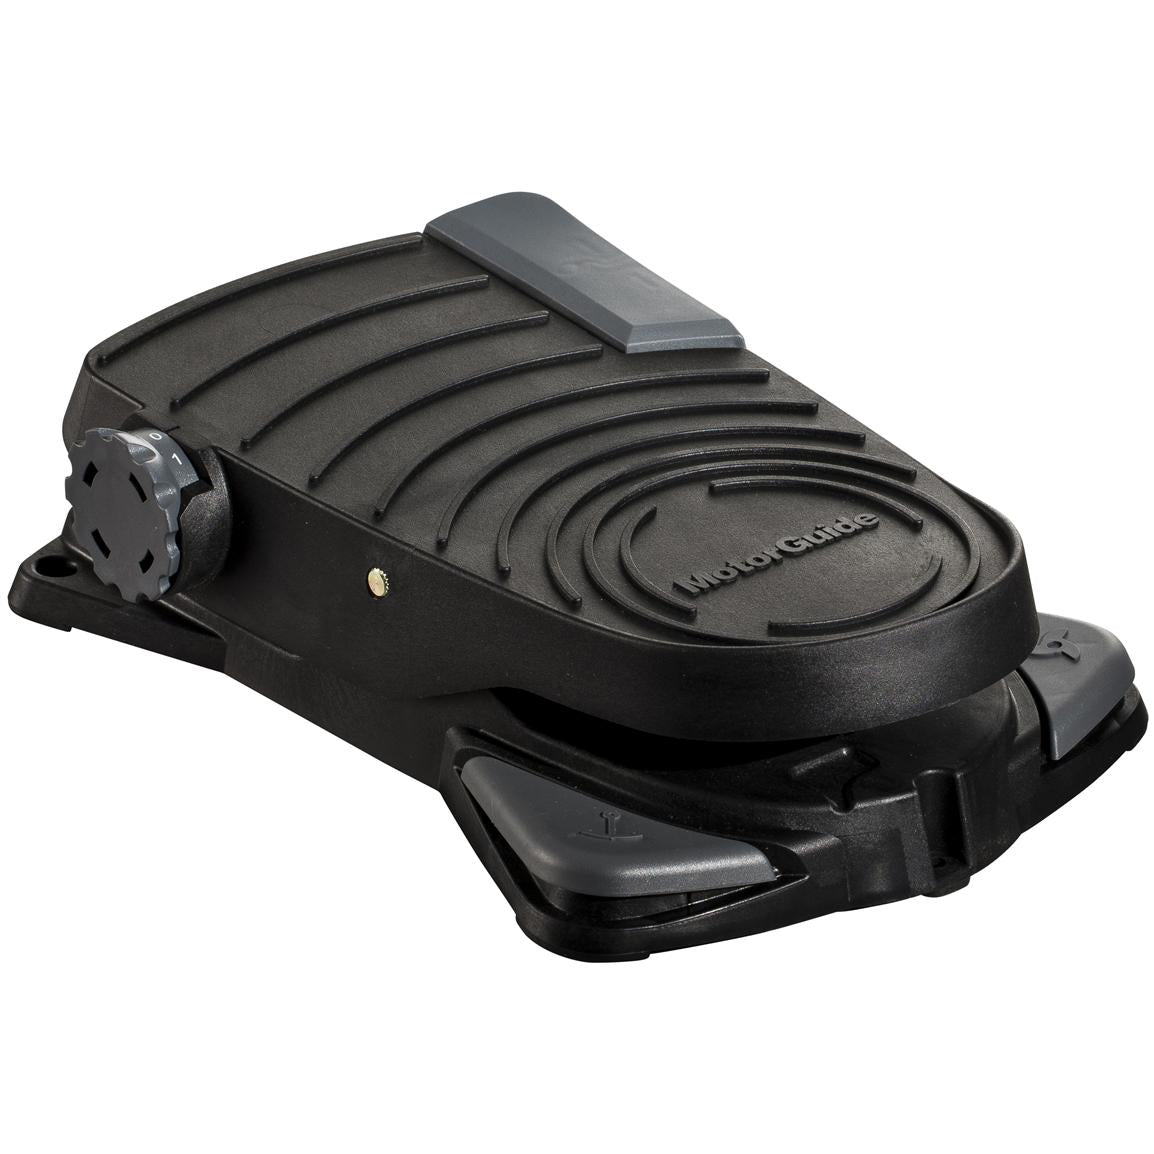 Motor Guide Wireless Foot Pedal for Xi3 and Xi5 - waves-overseas